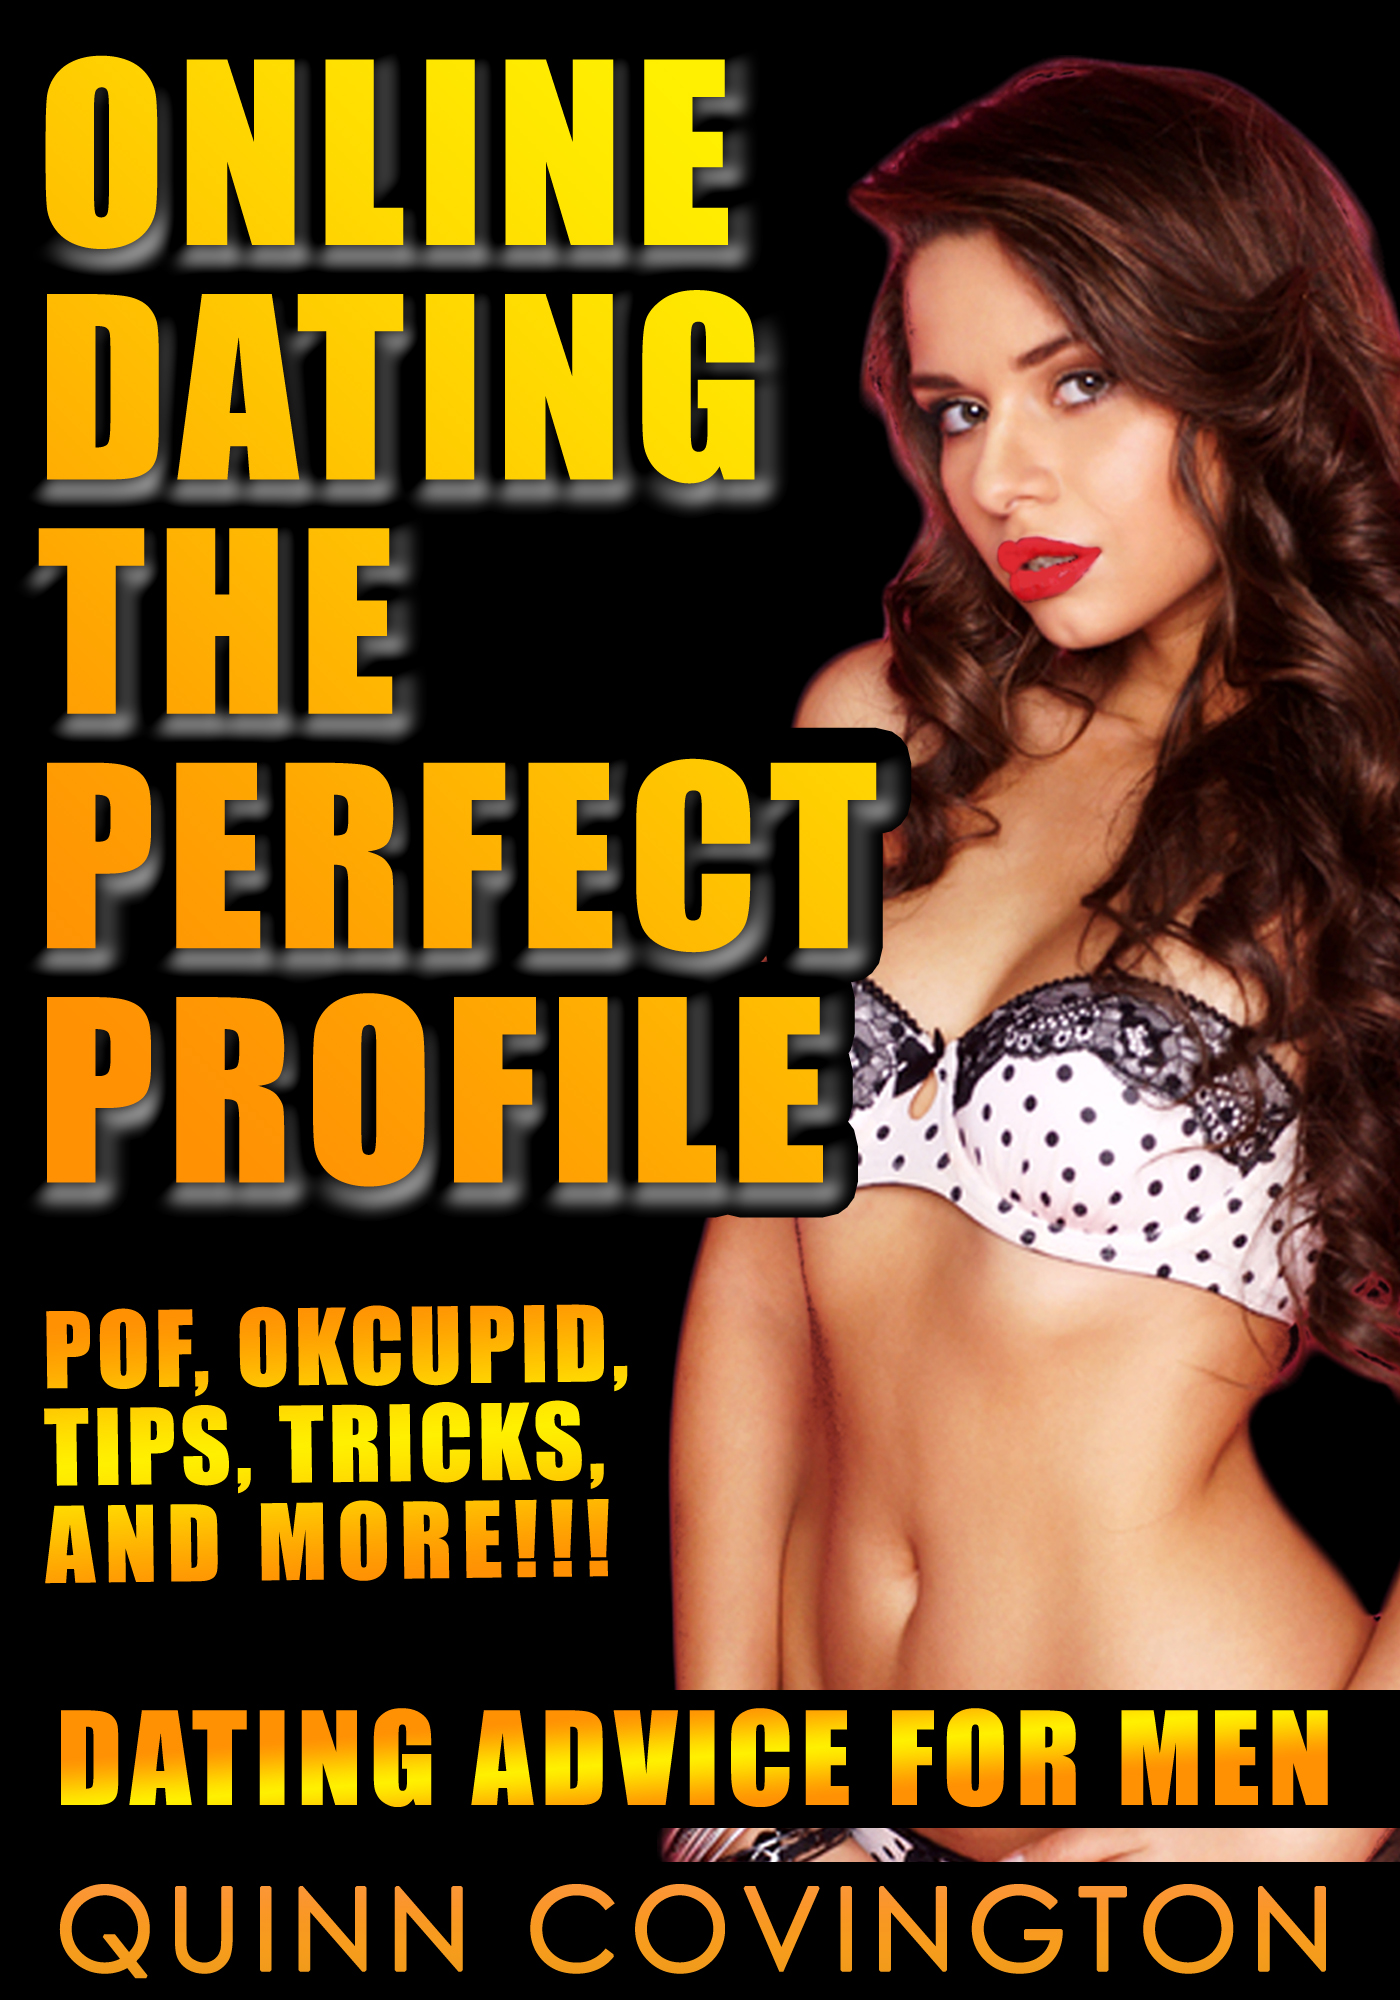 reddit perfect online dating profile Hilarious dating profiles online dating can be hard, but these hilarious best tinder profiles funny profile descriptions reddit profiles will ease your paini'm sure it's very good of you to take me up, said hilarious dating profiles samit gives an account.